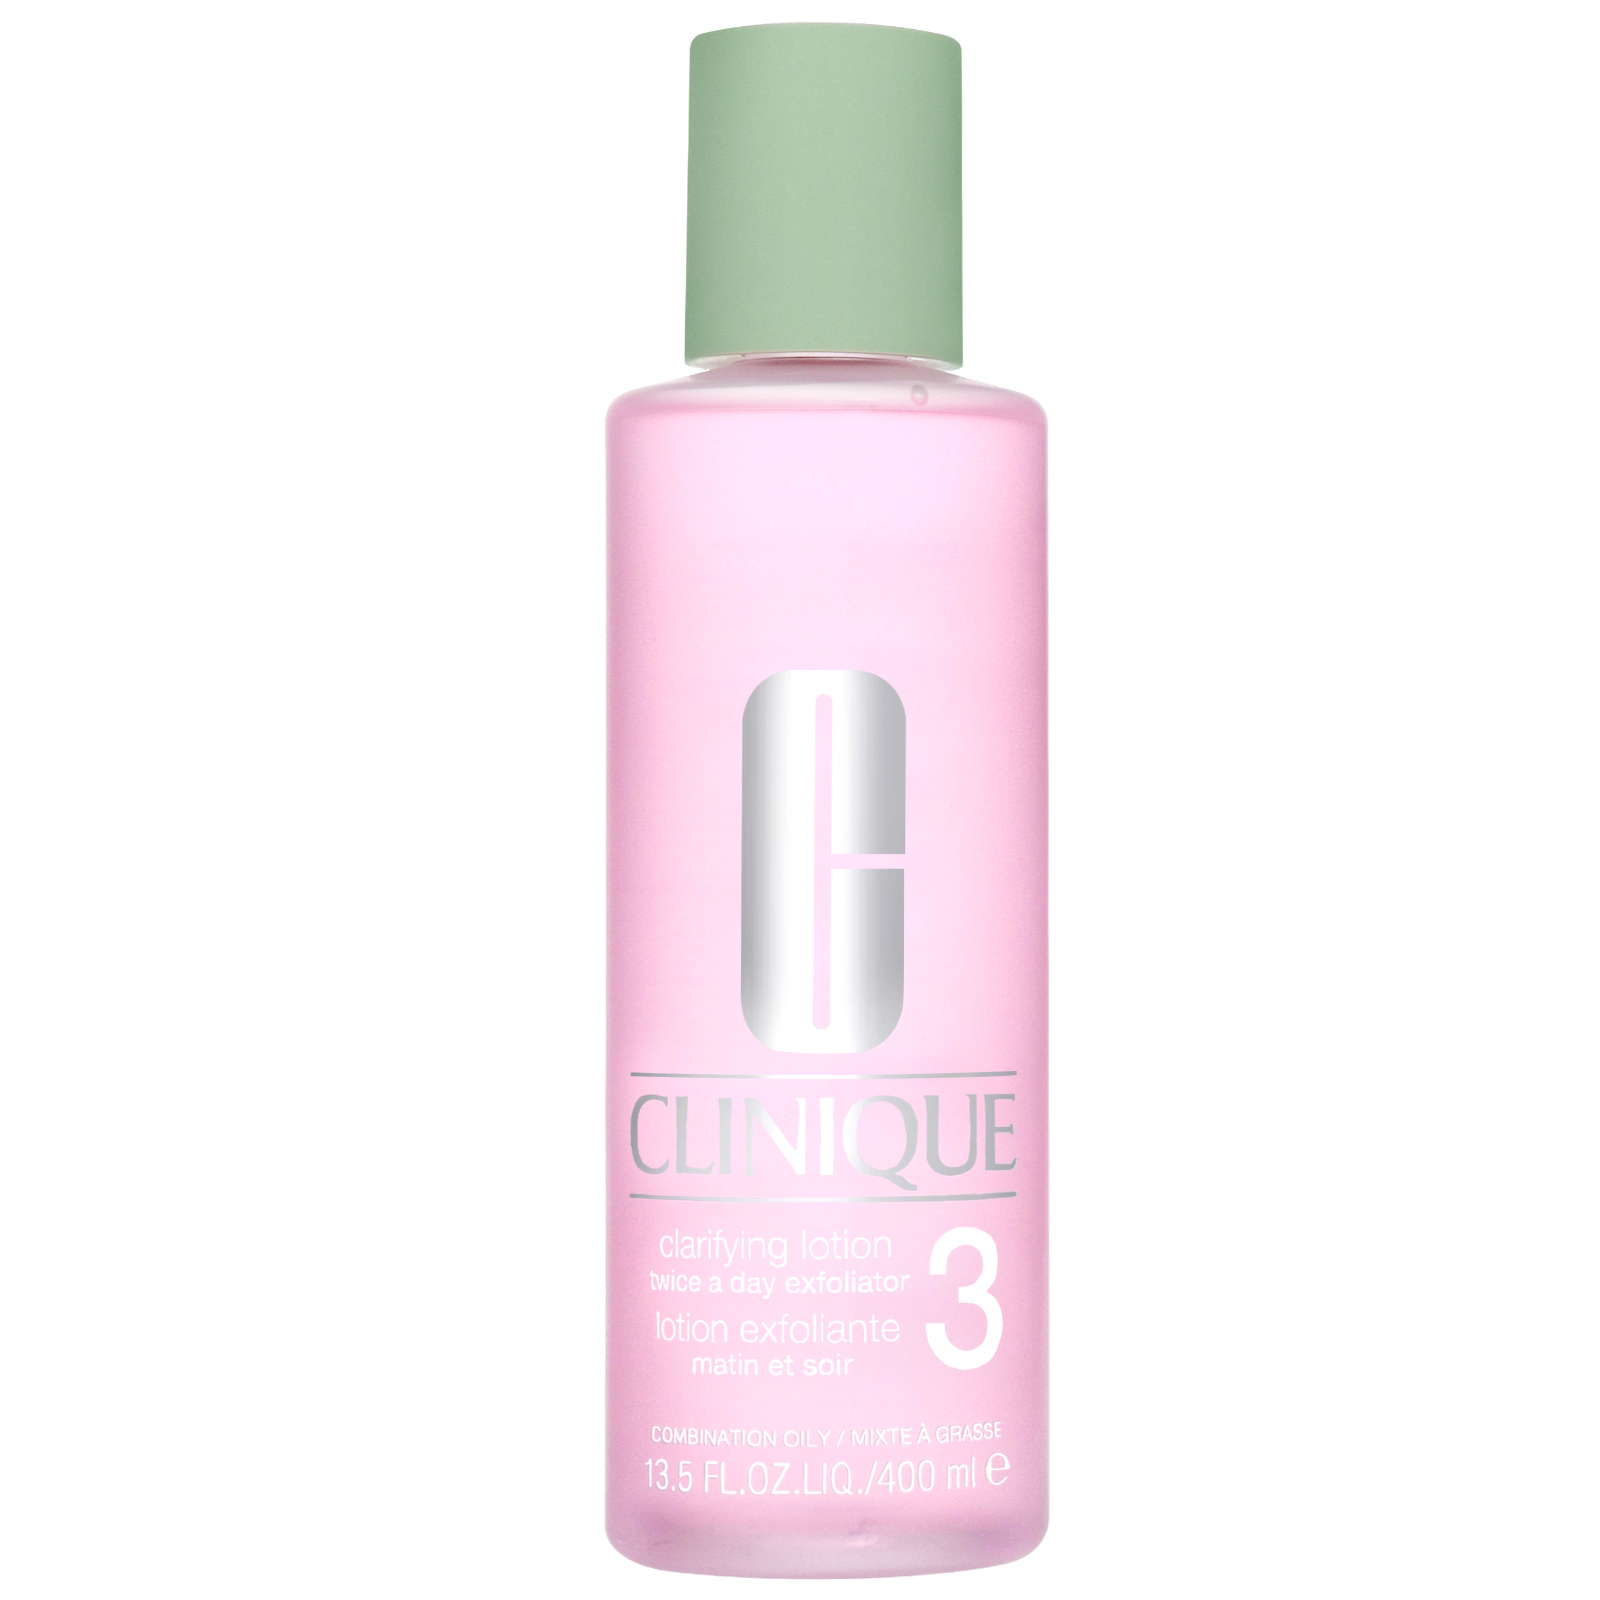 Clinique Cleansers & Makeup Removers Clarifying Lotion Twice A Day Exfoliator 3 for Combination and Oily Skin 400ml / 13.5 fl.oz.